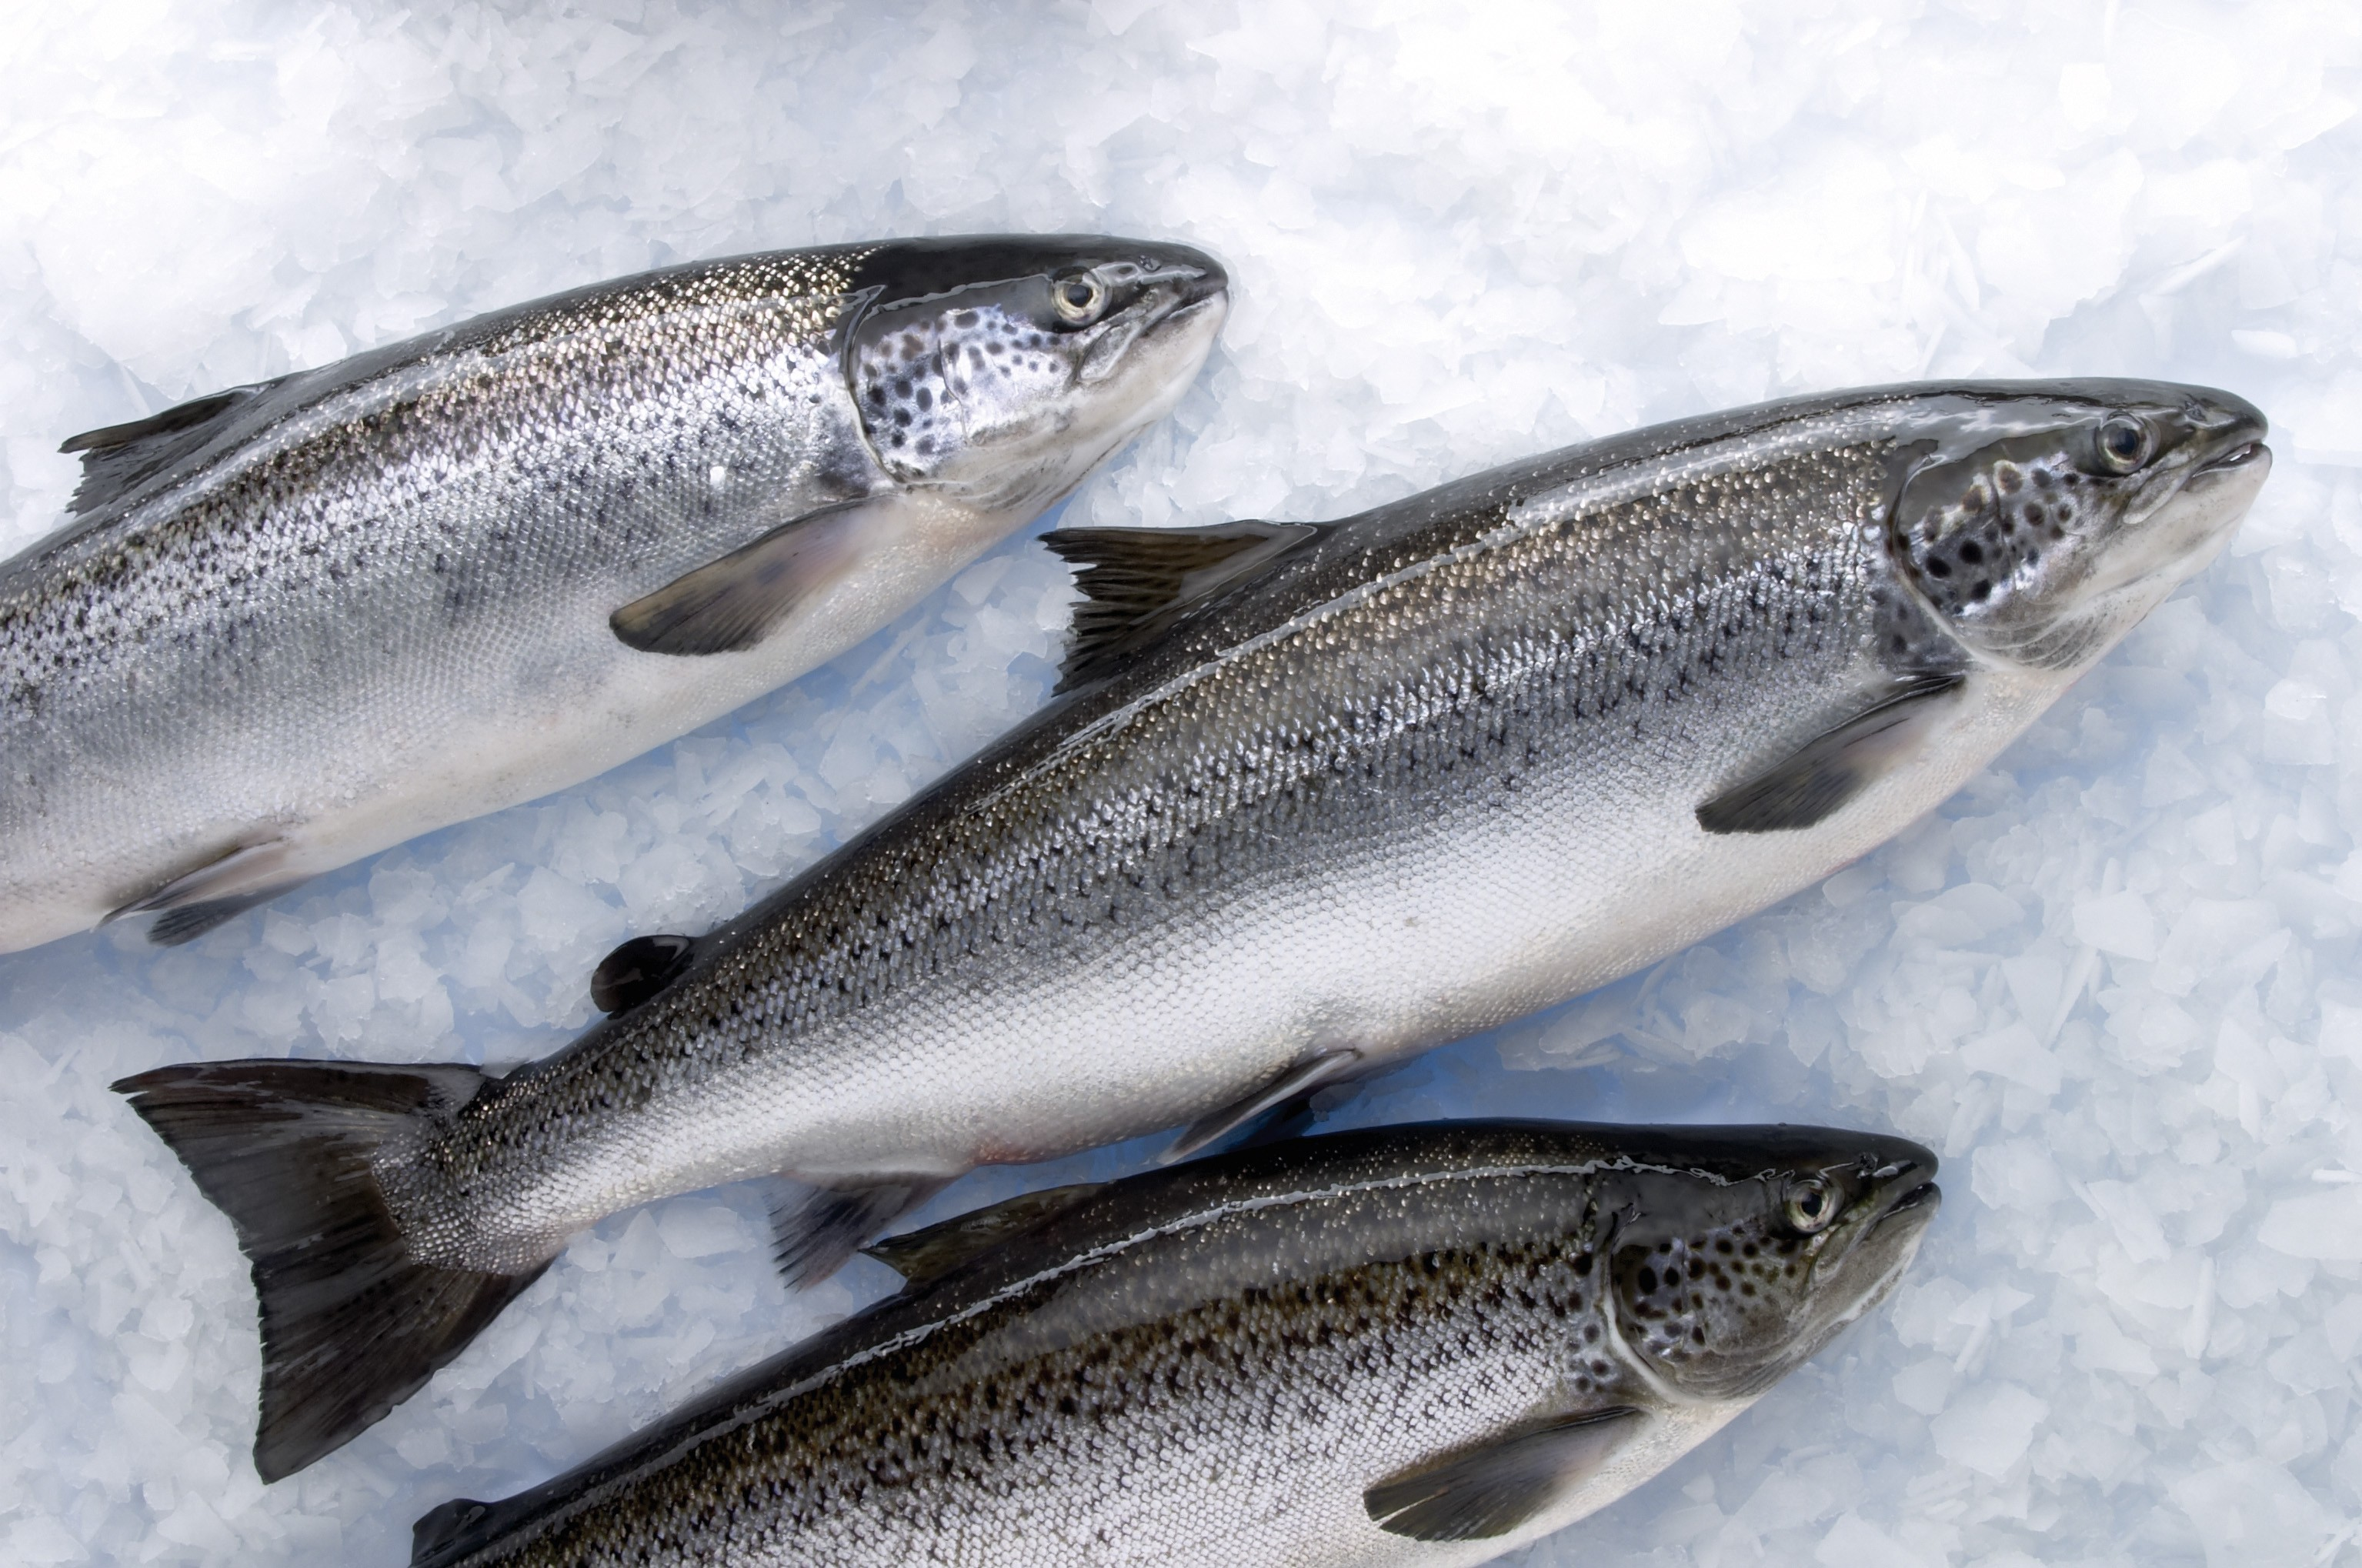 three salmon displayed laying diagonally, tail bottom left up to head top right, on ice.